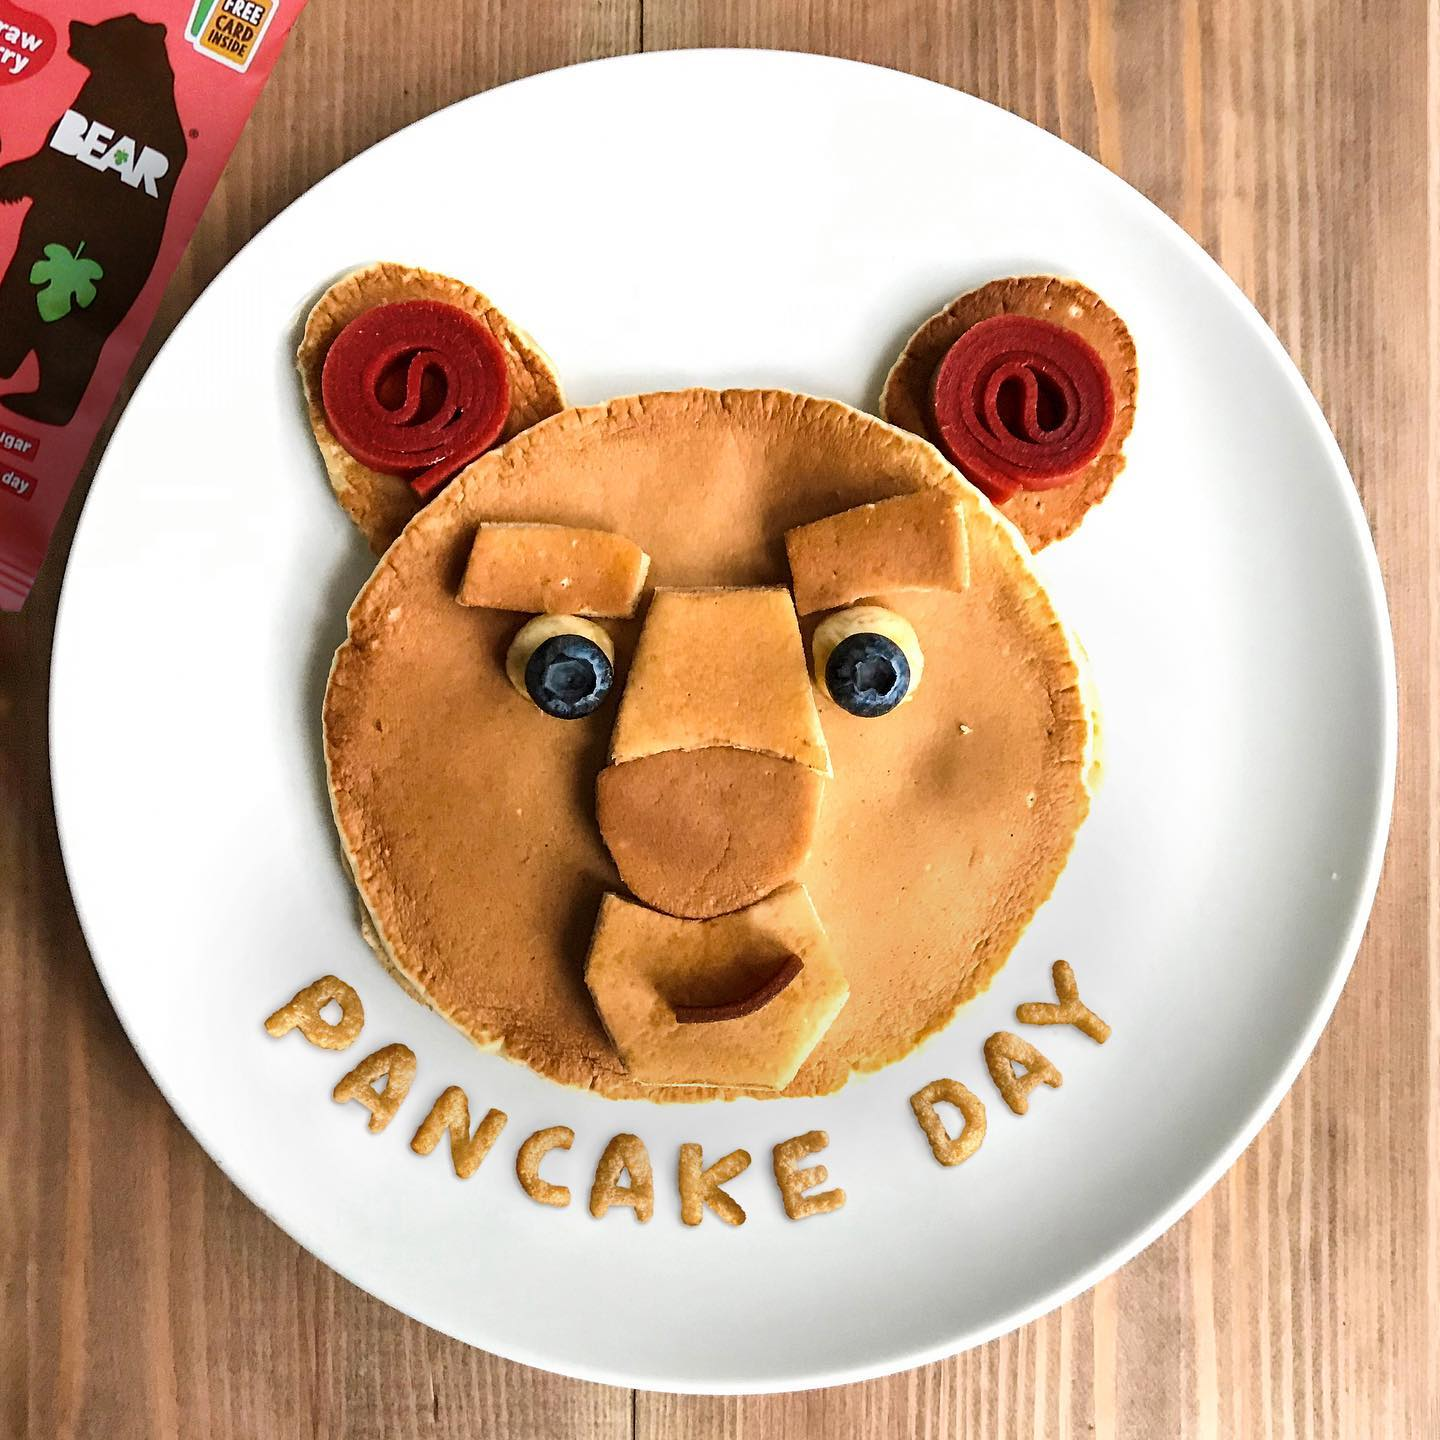 How do your cubs feel about pancakes for dinner tonight? Thrilled 😁 or confused? 😕⁣ ⁣ Have a BEARilliant Pancake Day everyone! 🐻🥞 ⁣ ⁣ #BEARsnacks #BEARyoyos #BEARpancakes #PancakeDay